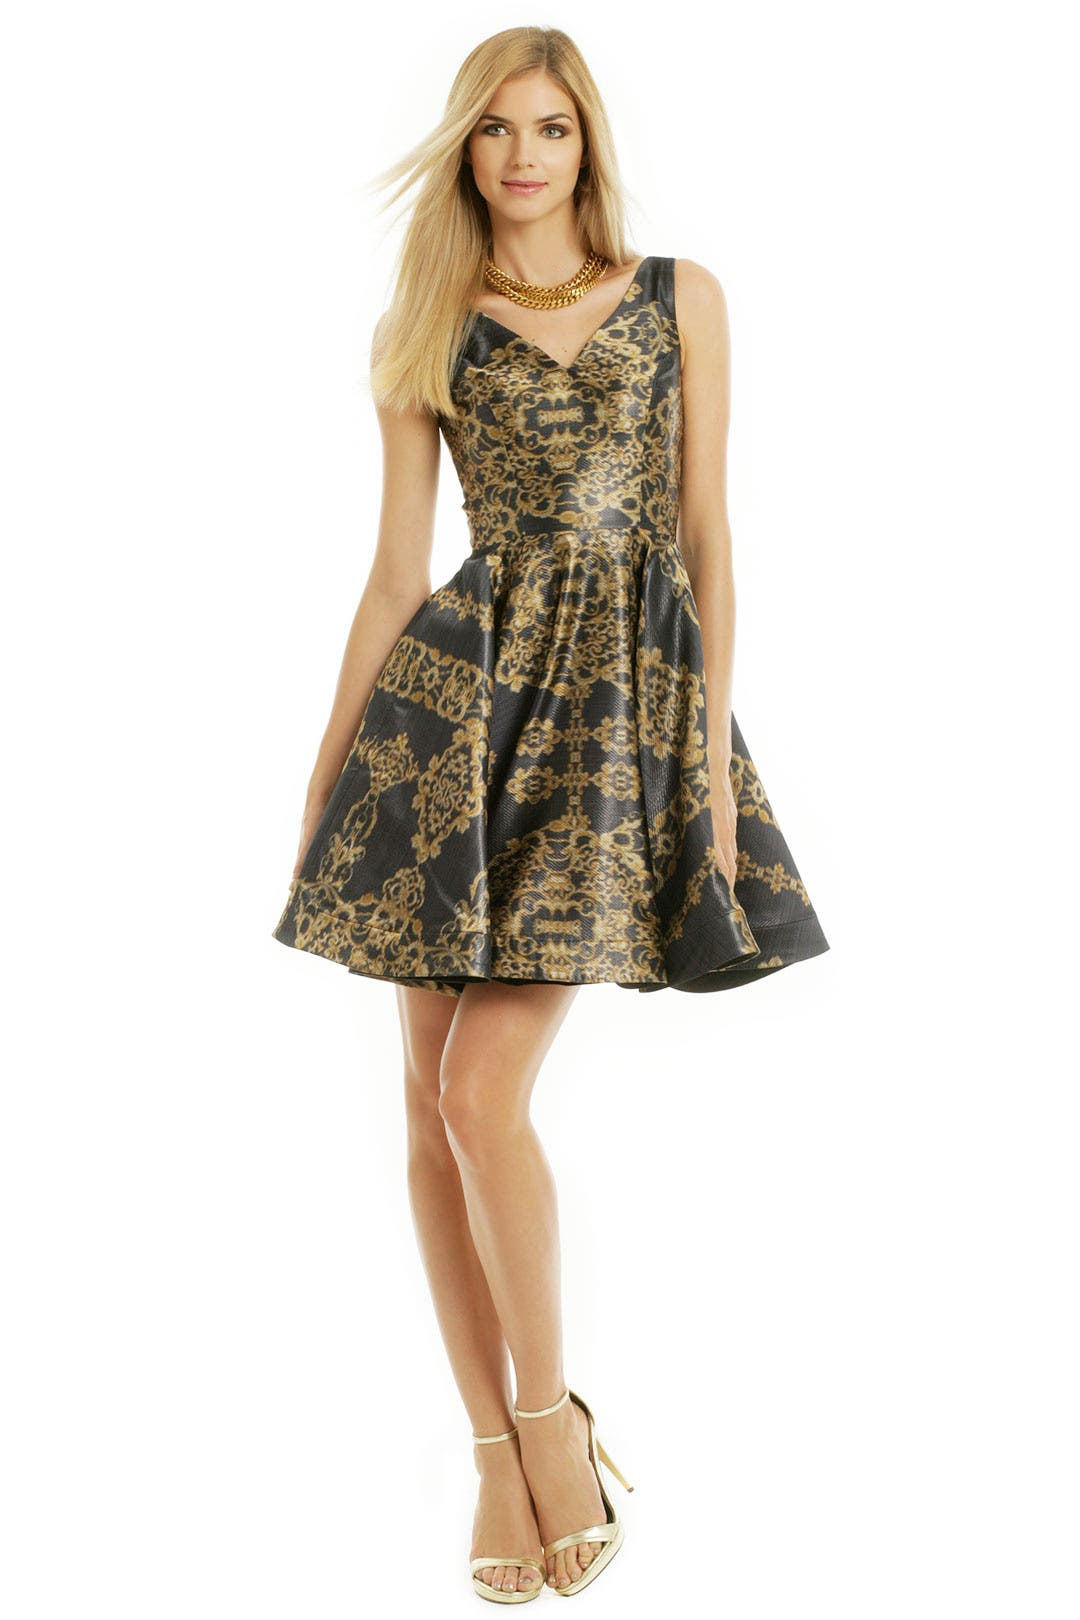 Go Ornate Dress by Christian Siriano